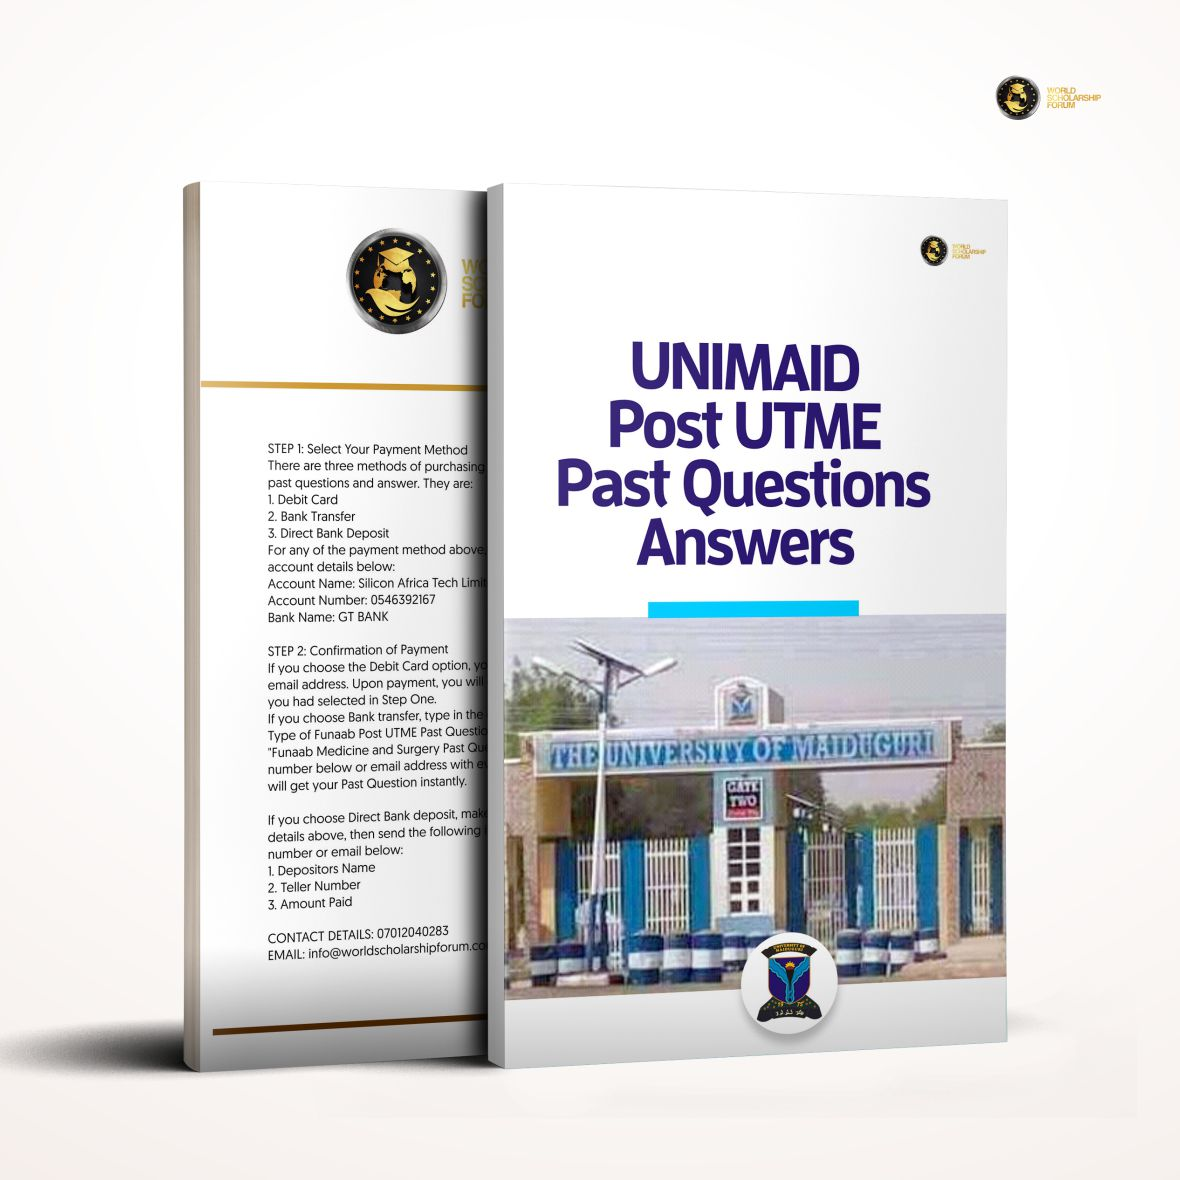 unimaid-post-utme-past-questions-answers